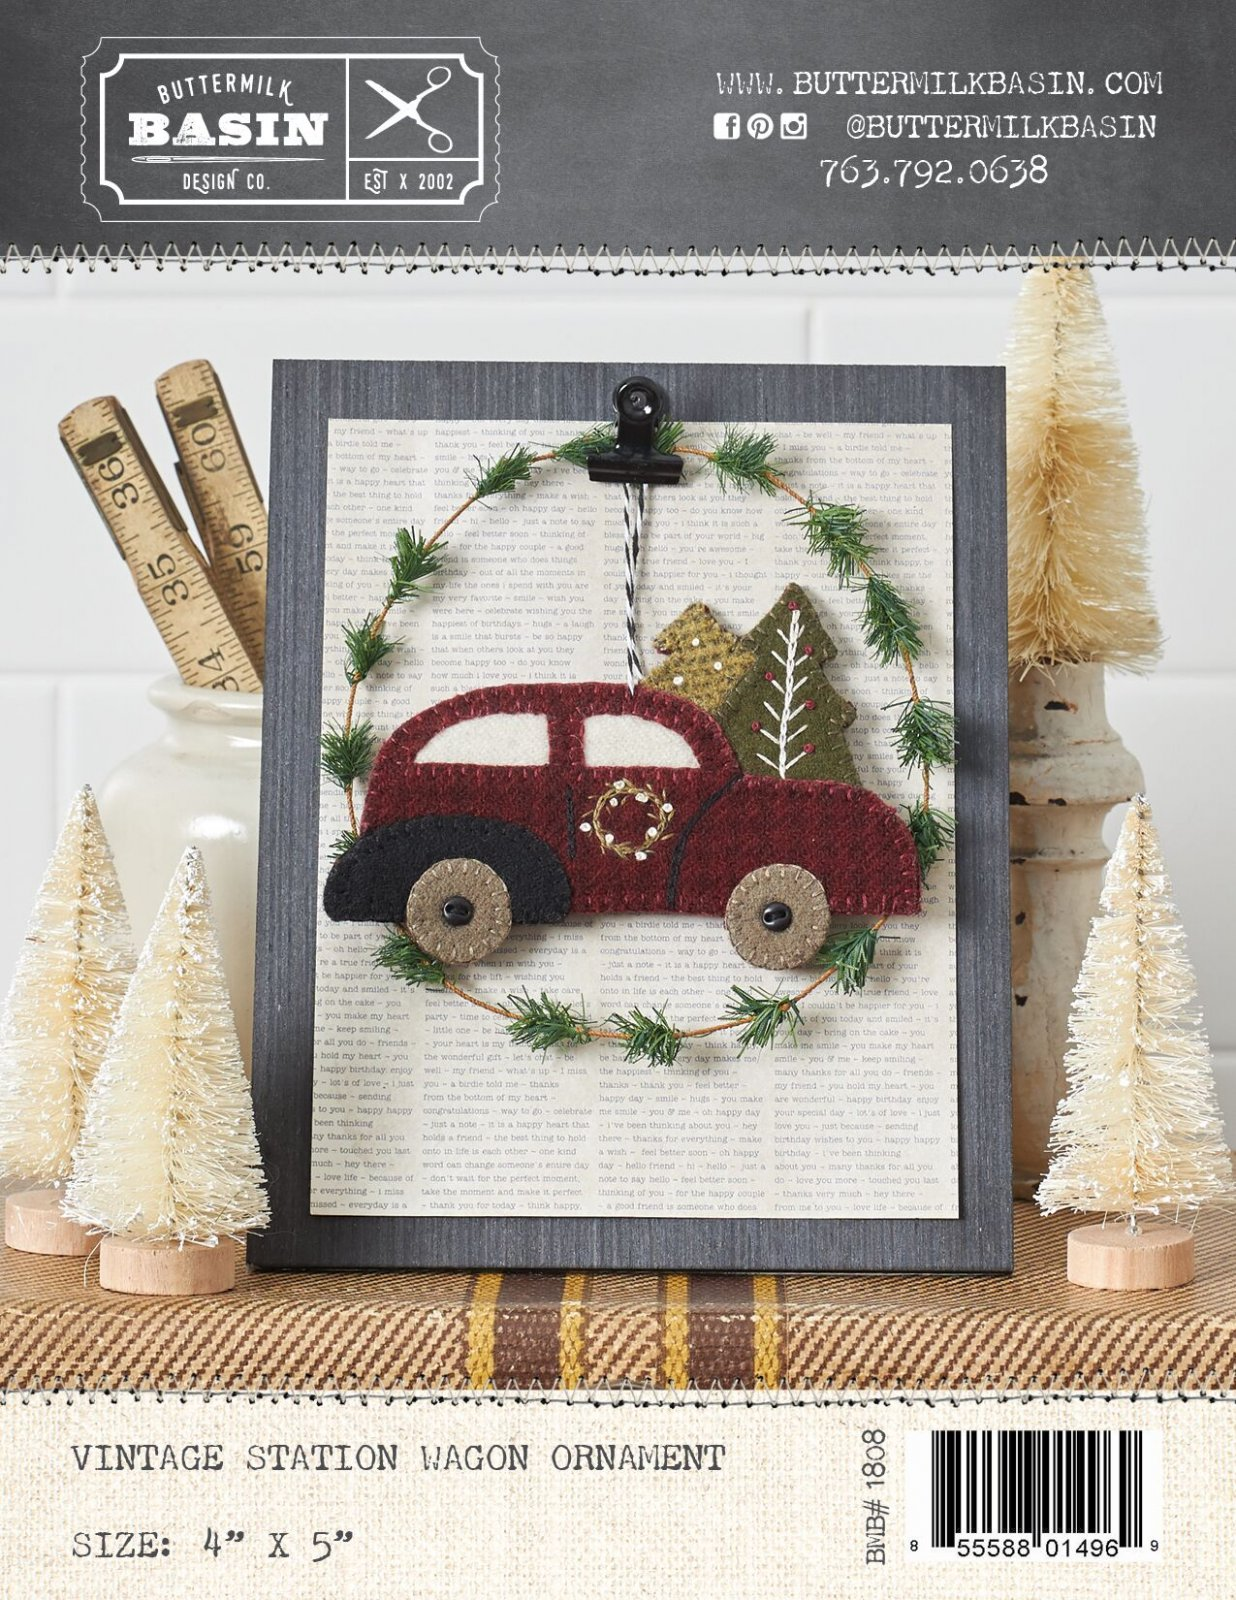 Vintage Station Wagon Ornament * Pattern & Kit